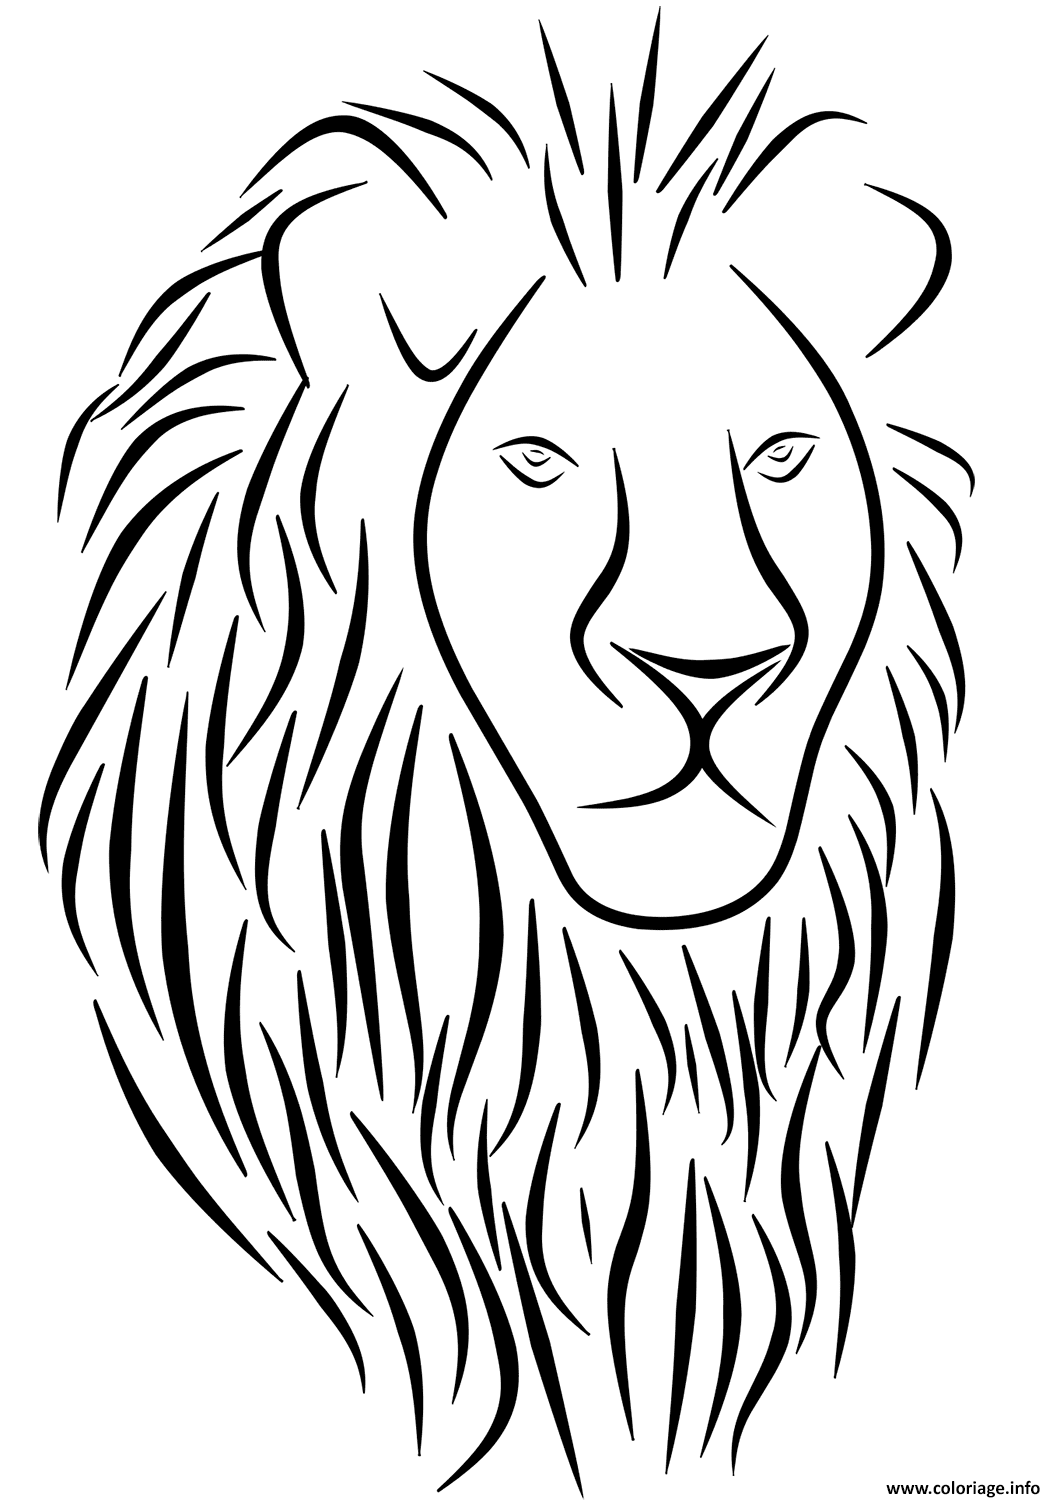 Coloriage Lion Tattoo Dessin à Imprimer